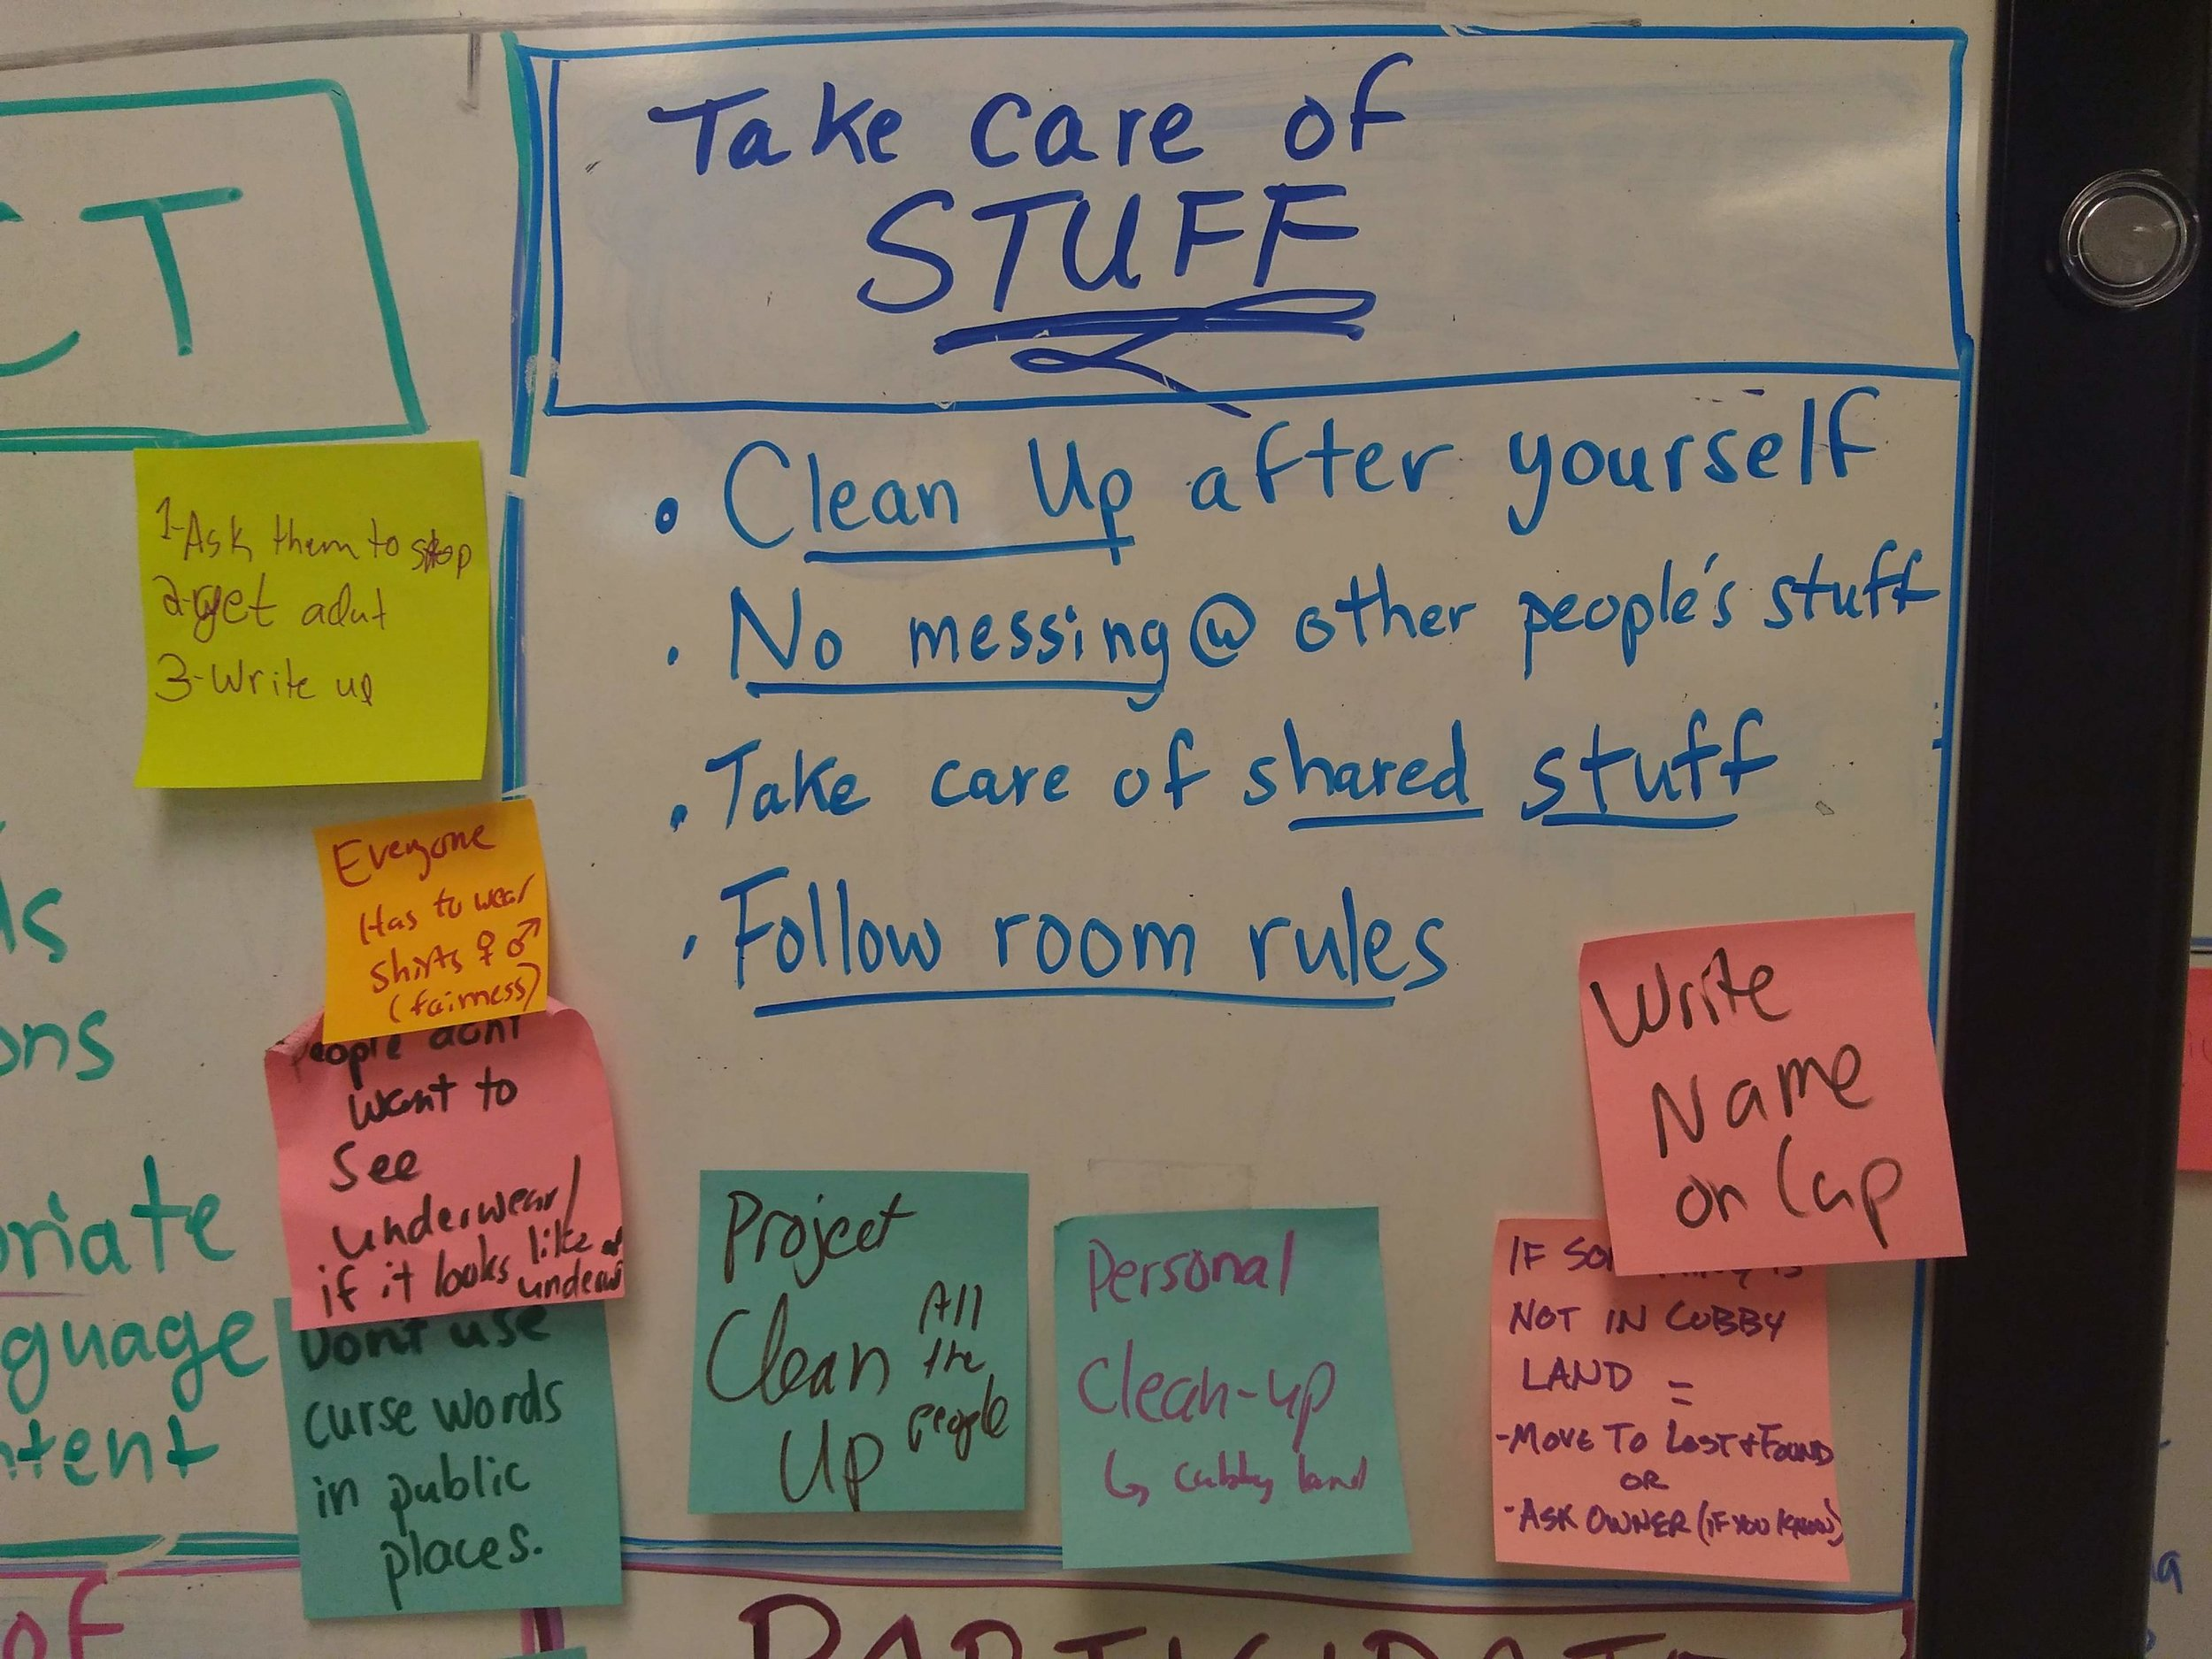 Agreements: Take care of stuff. Rules are in blue. Sticky notes are practices that help support the rules, which help support member agreements.